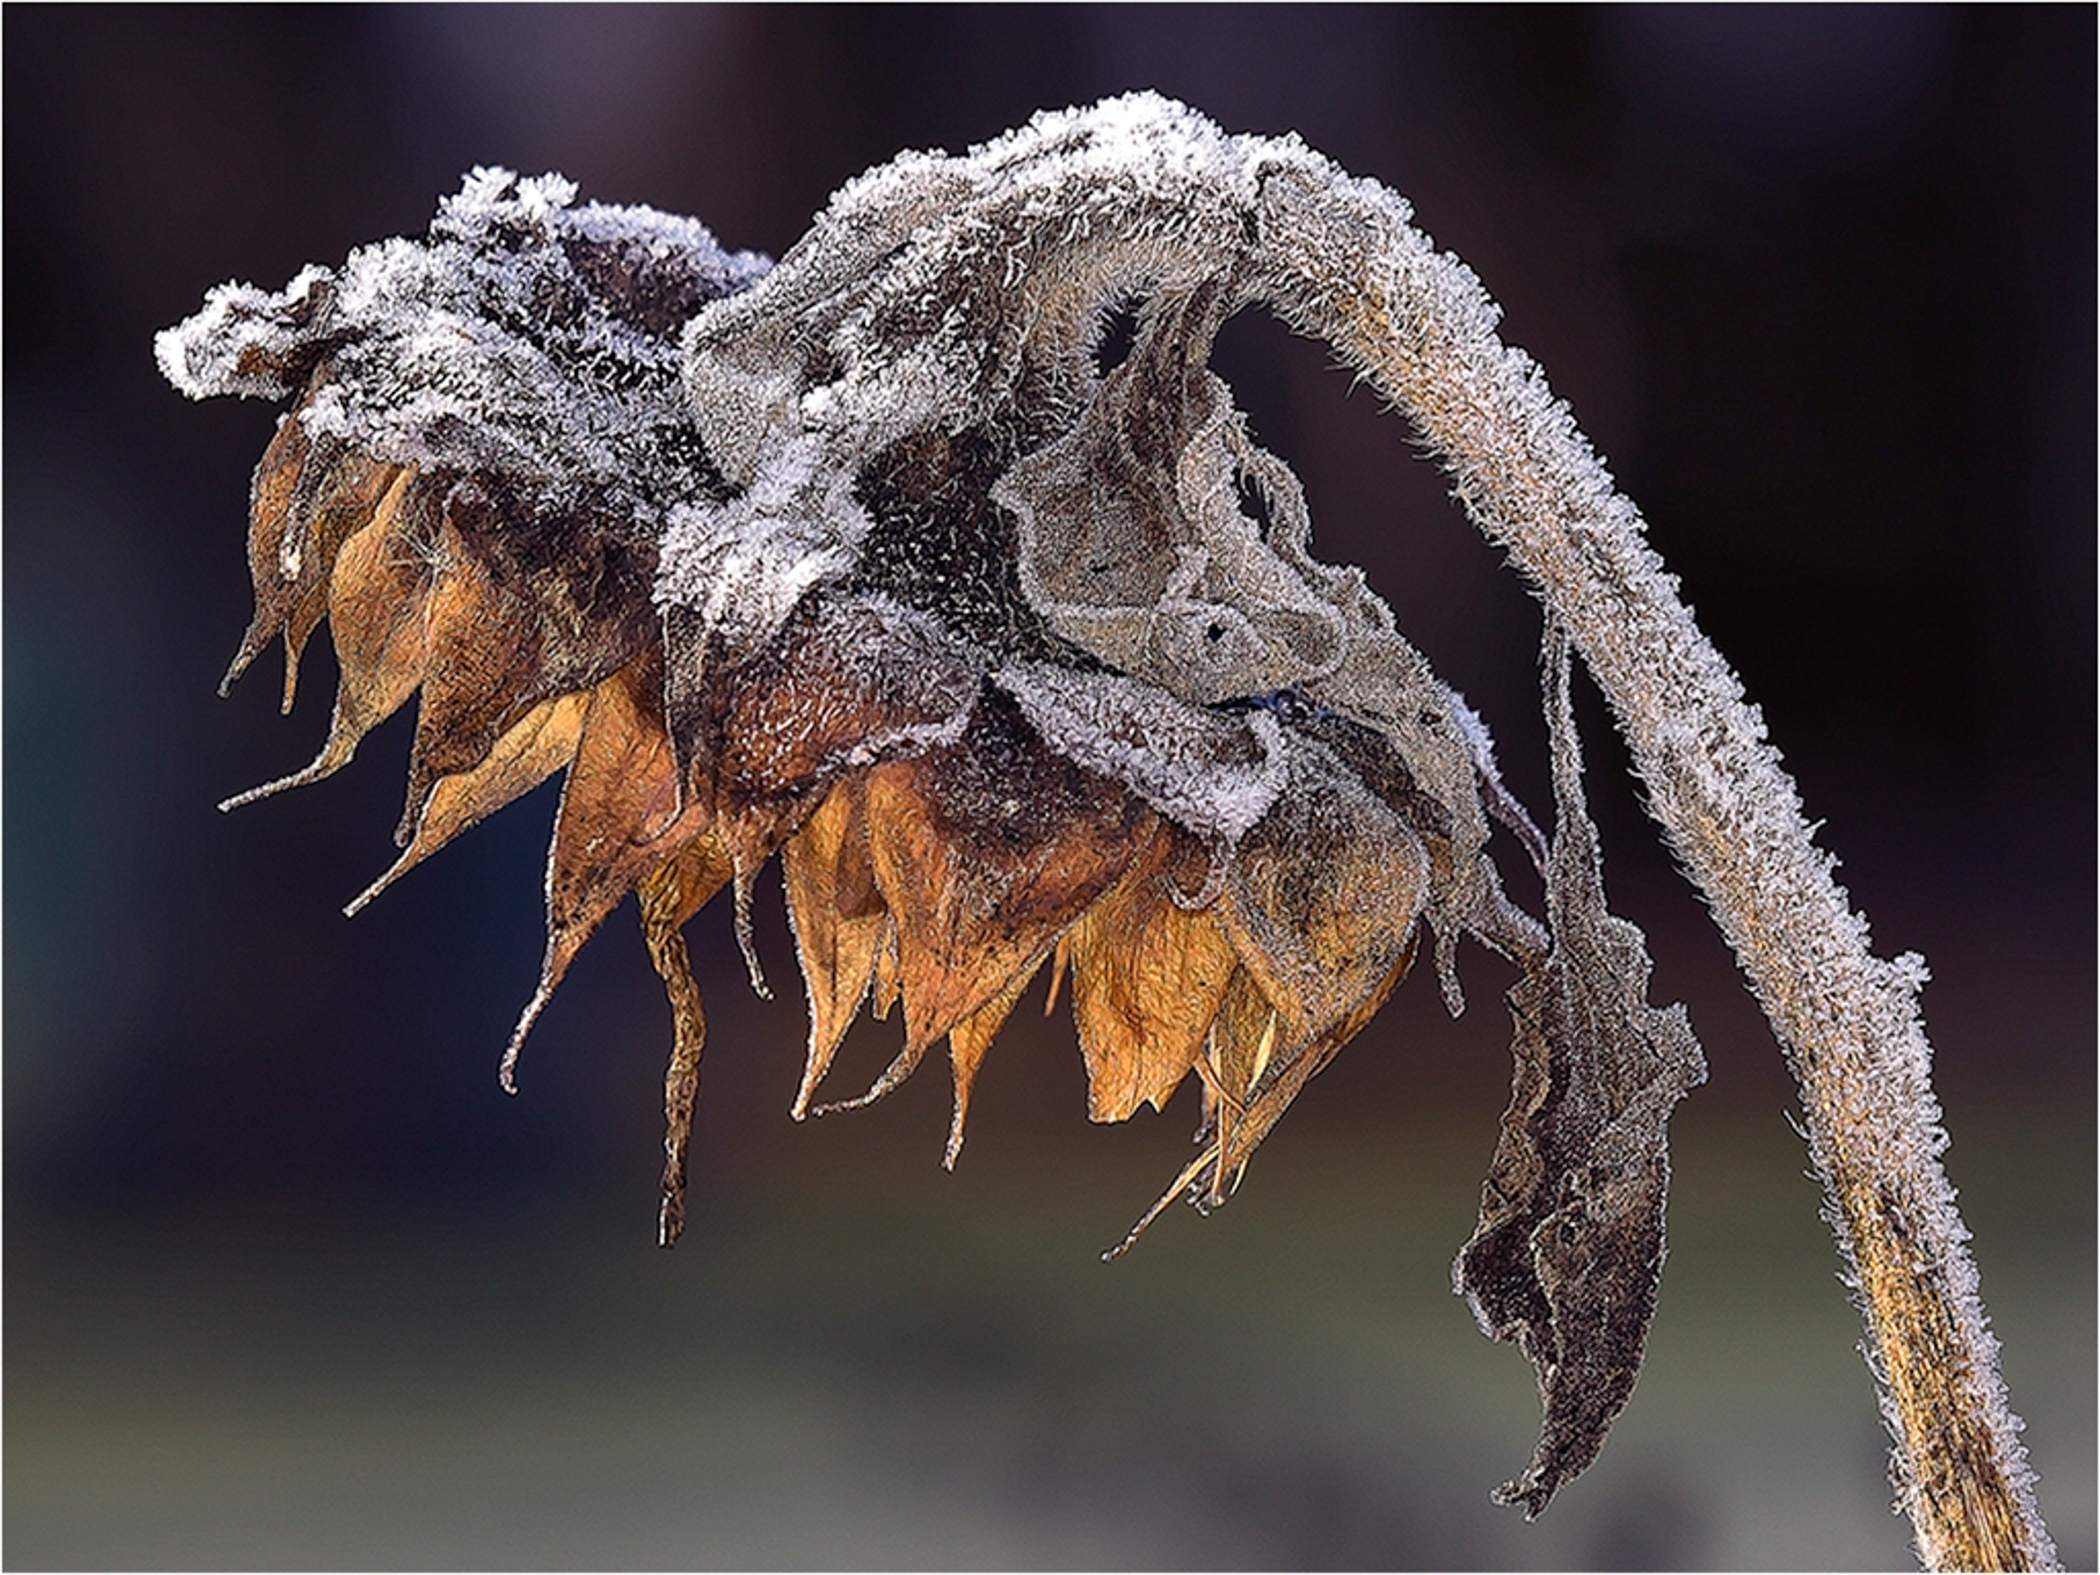 Best of Show - Frosty Senescent Sunflower~Kurt Huebner